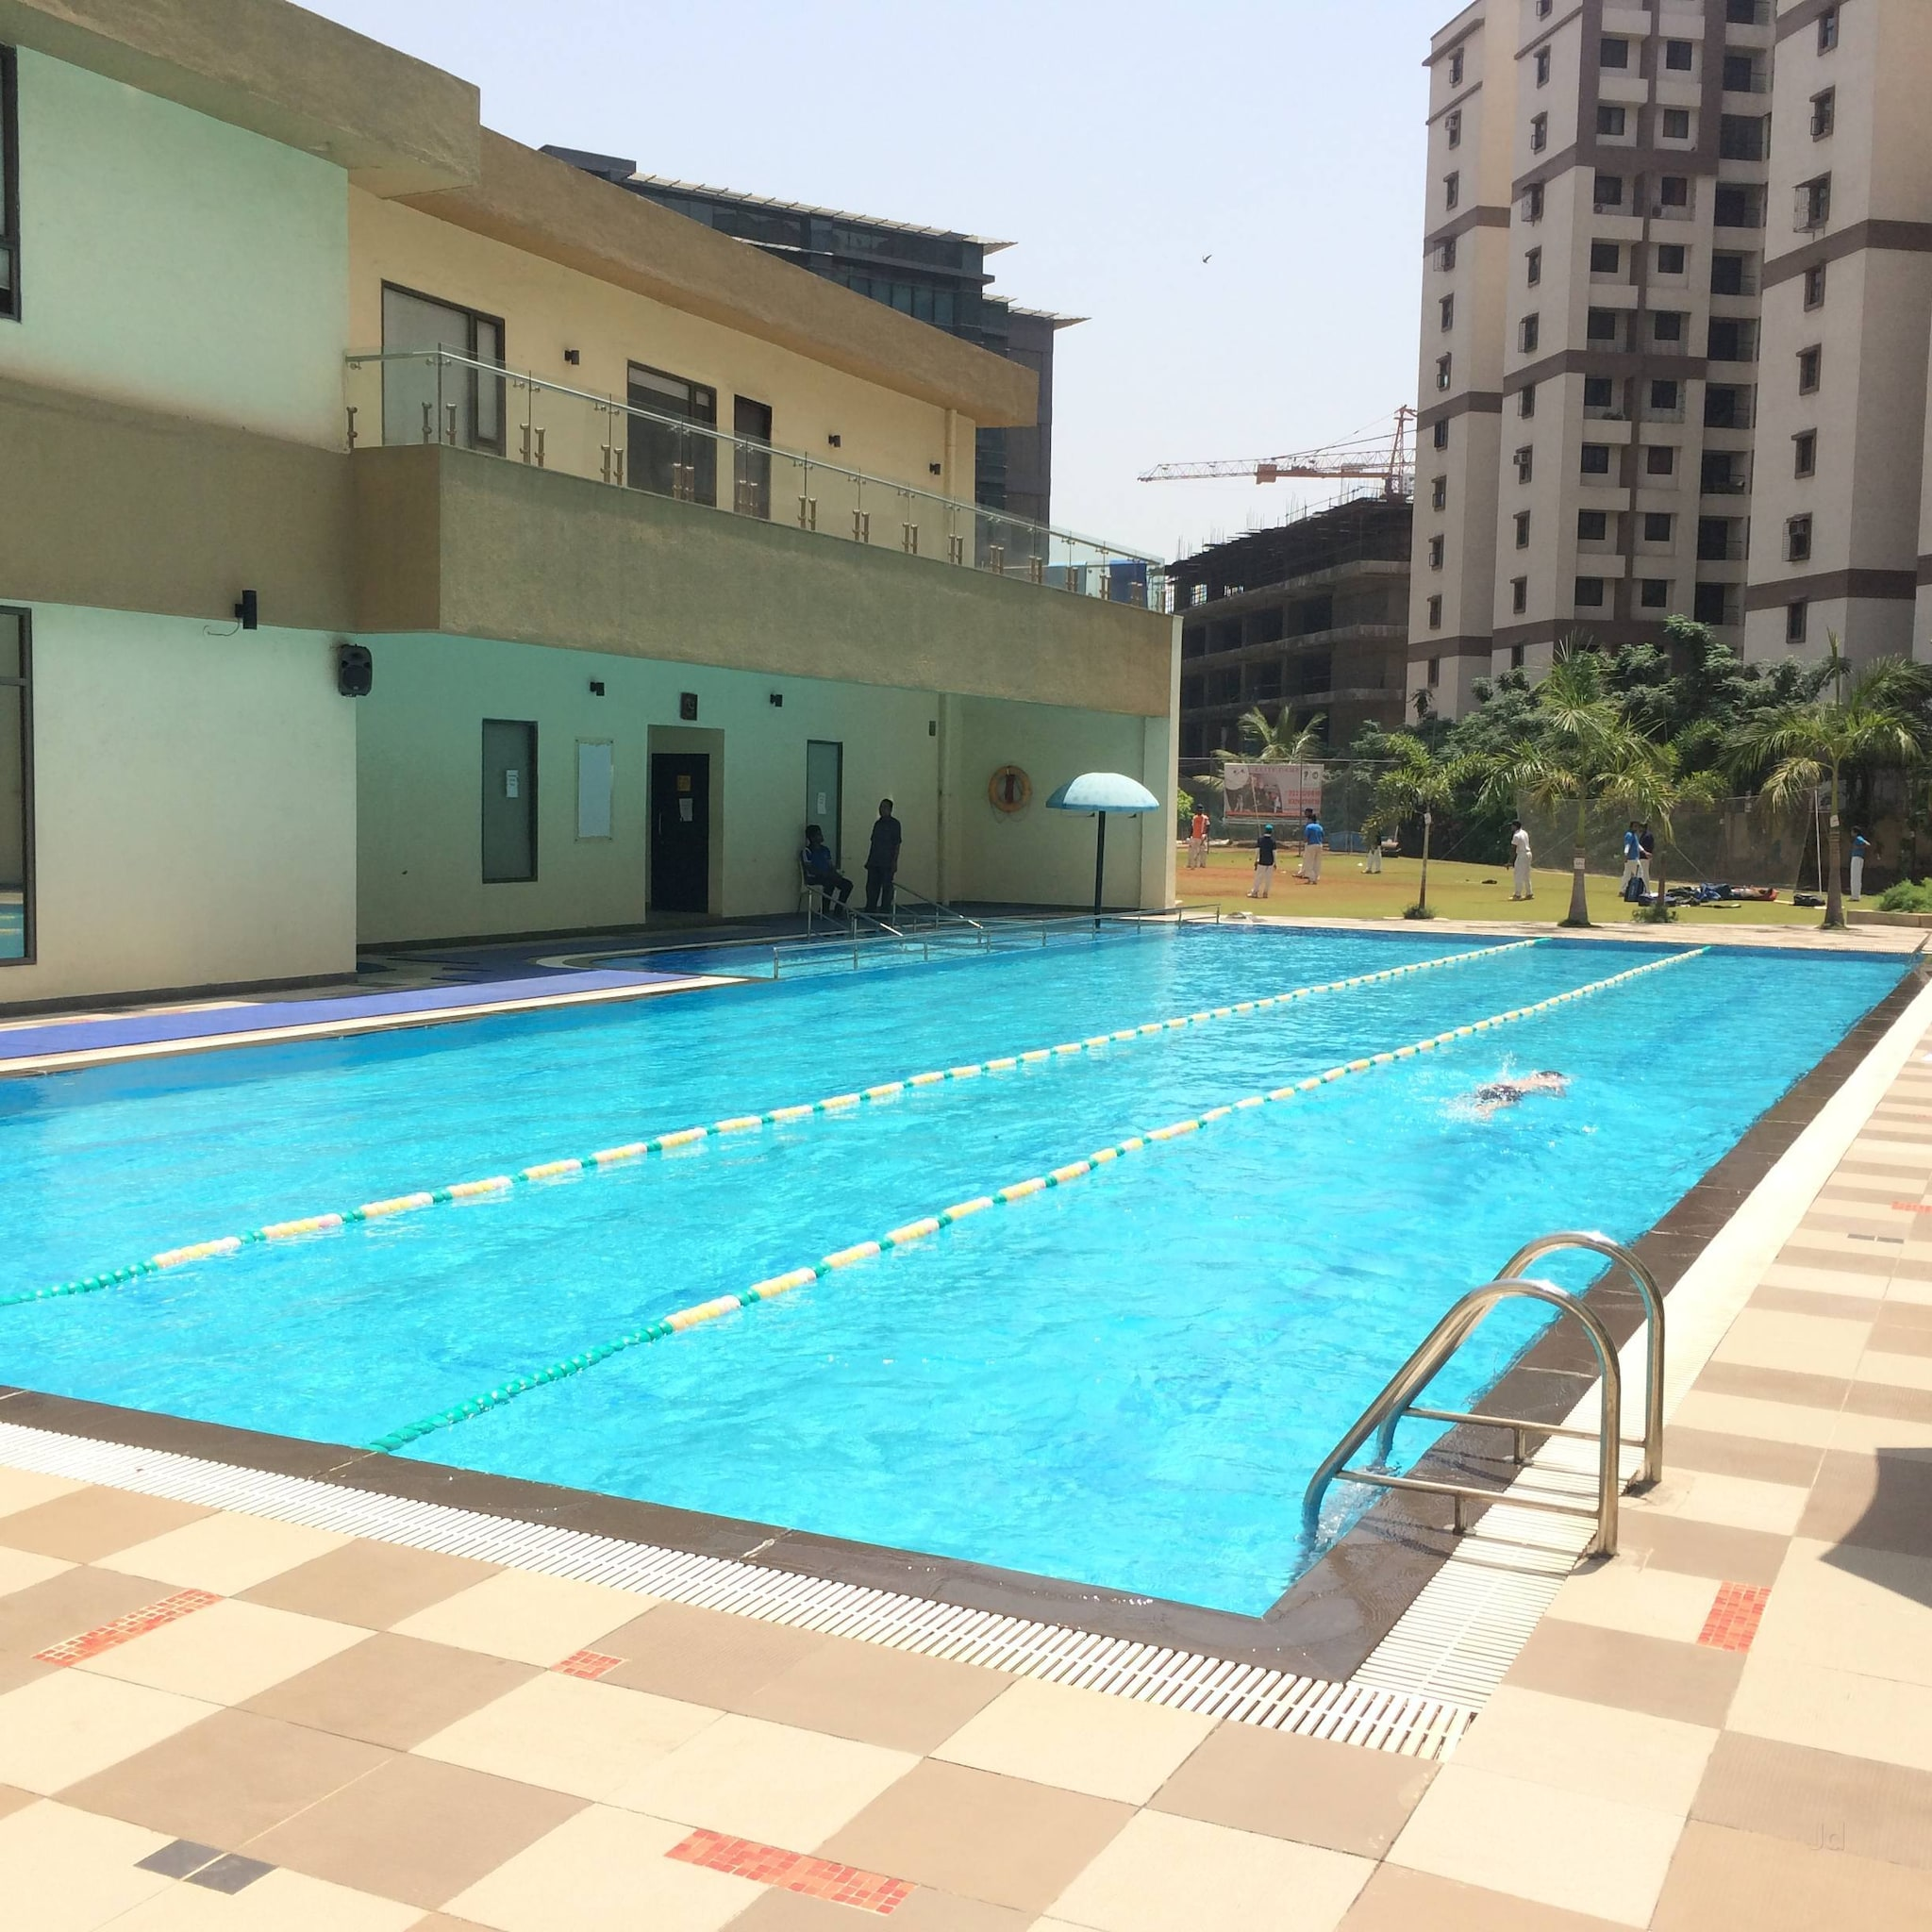 Swimming Pool Accessories Suppliers In Mumbai - Best Foto ...